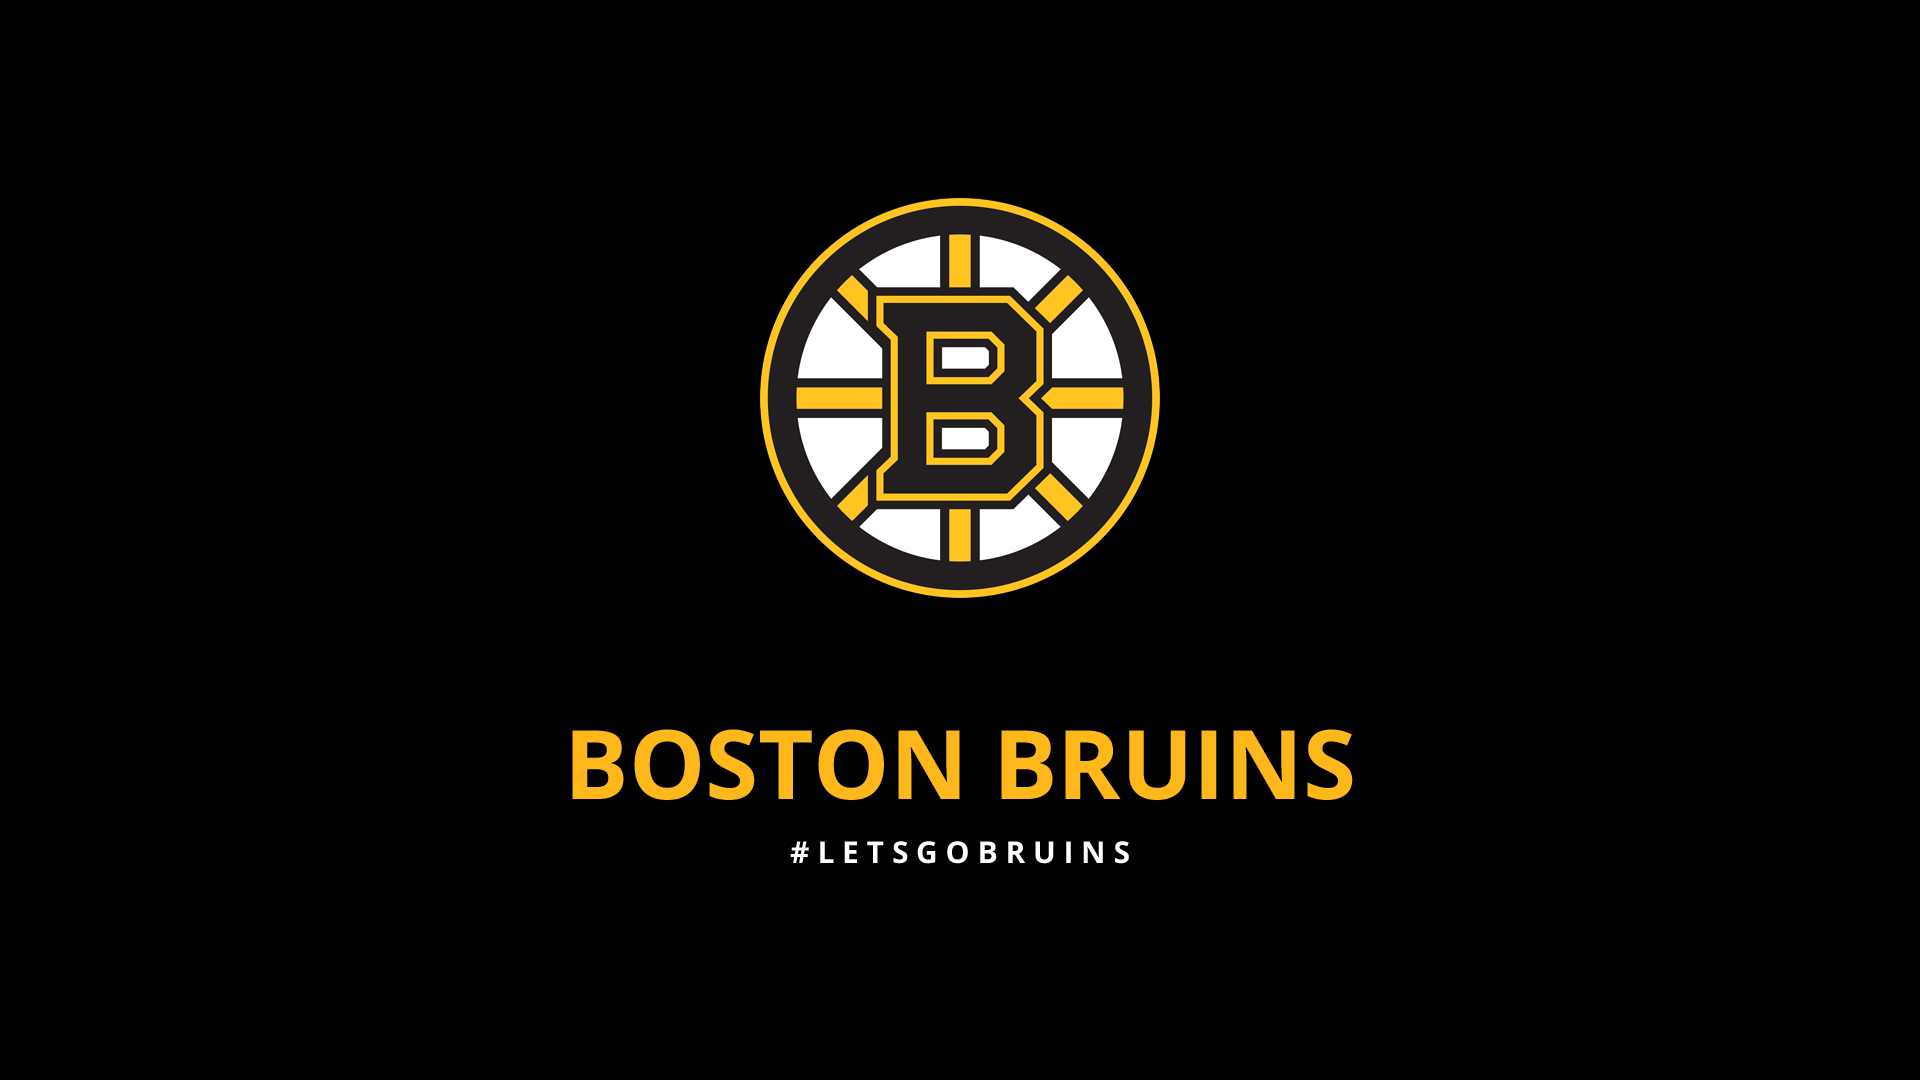 Minimalist Boston Bruins wallpaper by lfiore on DeviantArt